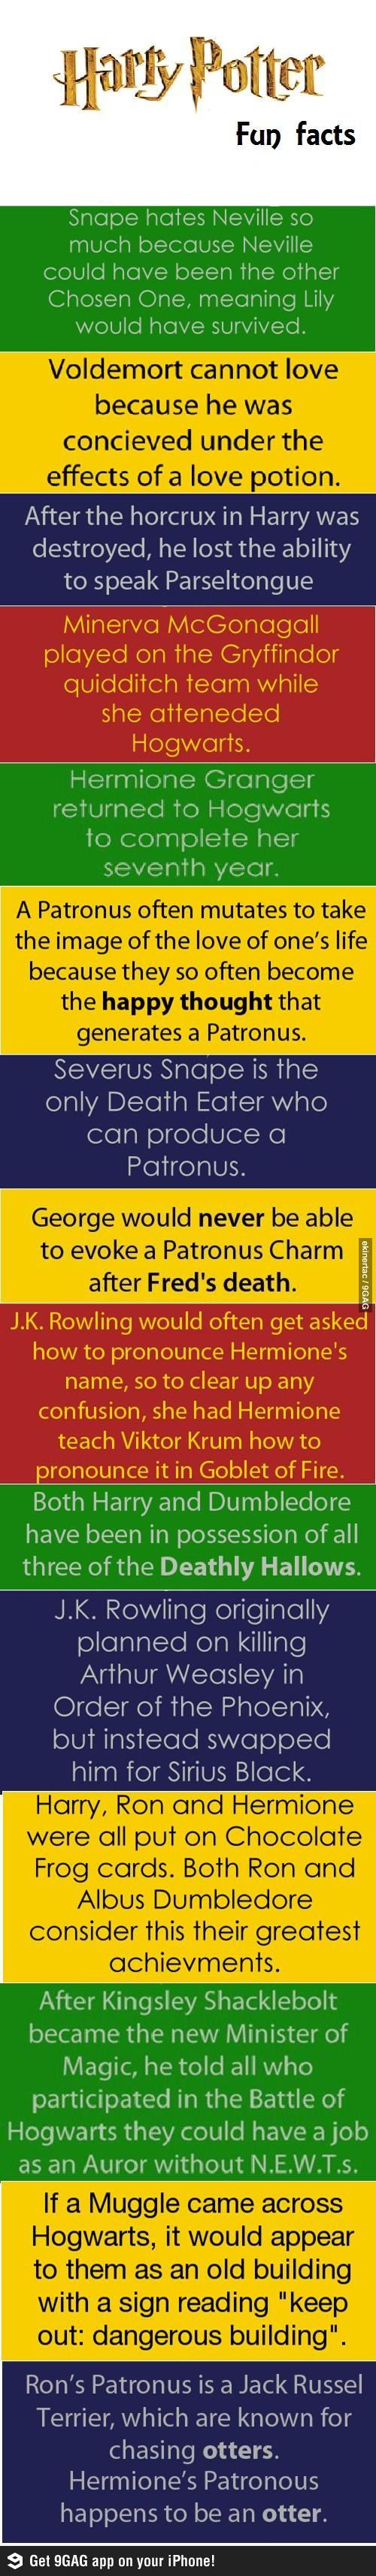 Harry Potter Fun Facts, or how even my Harry Potter loving mind was blown.